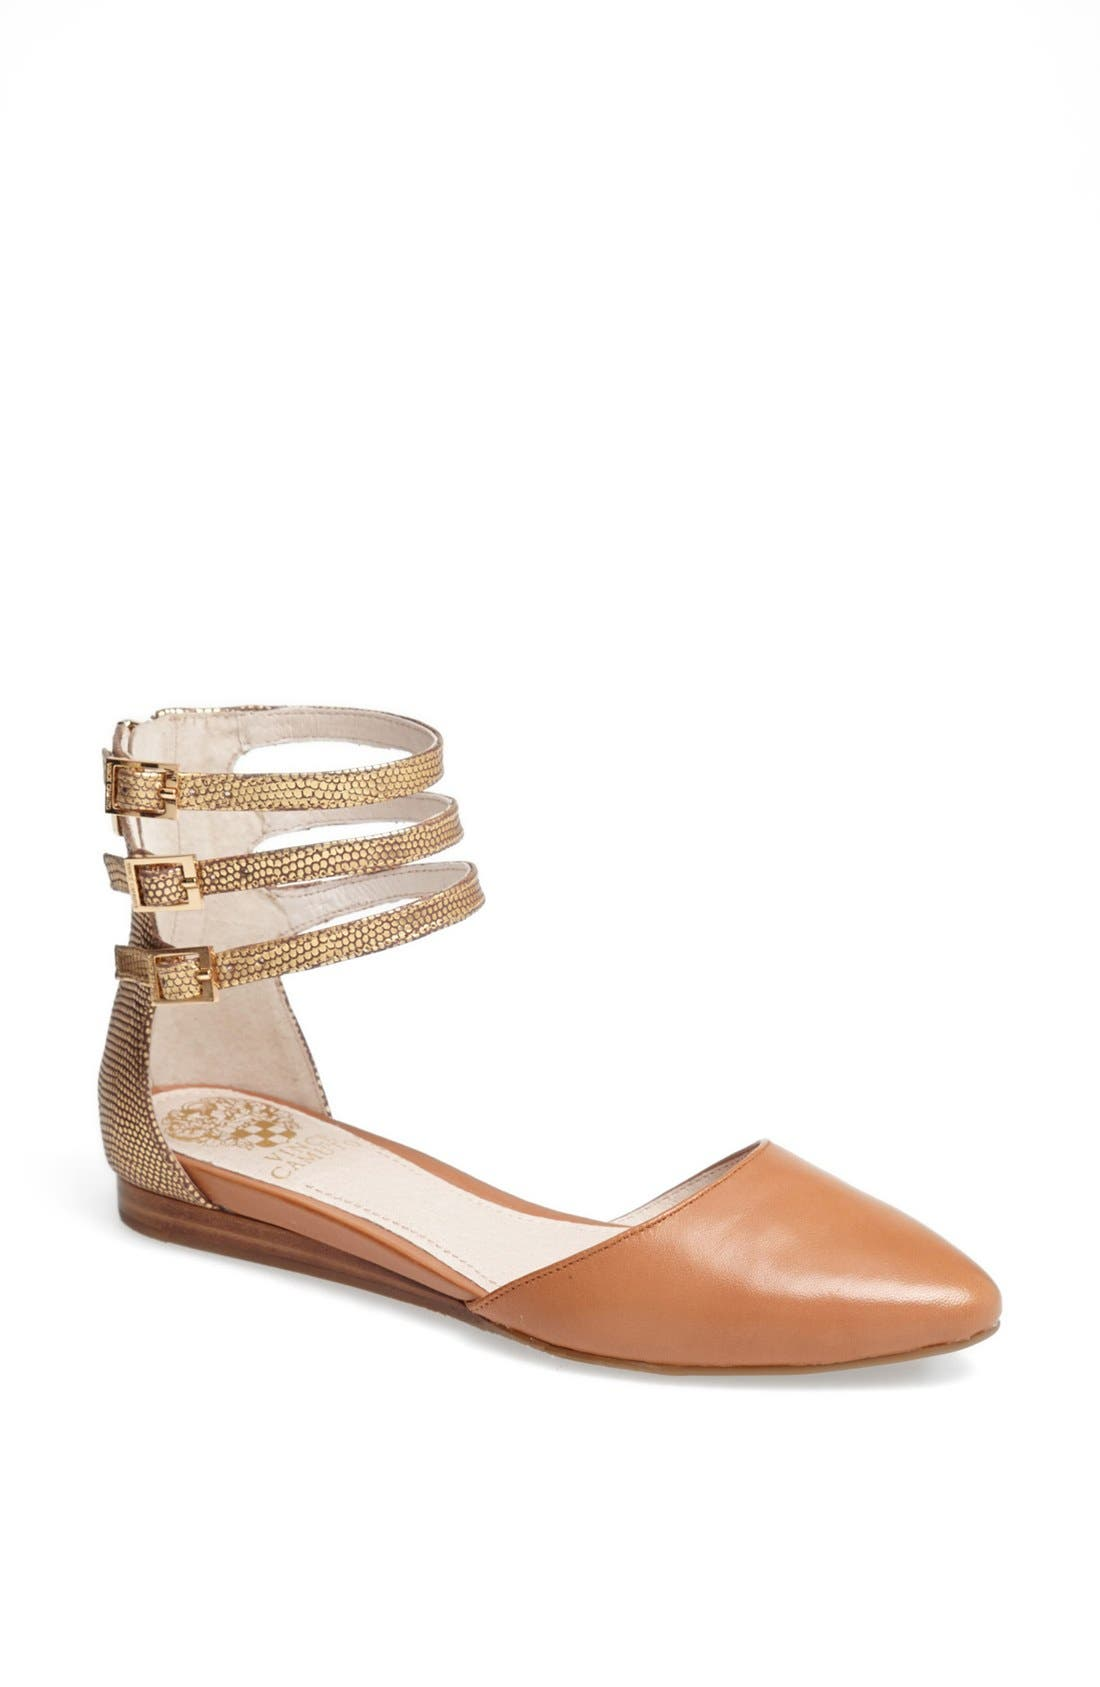 Main Image - Vince Camuto 'Wiji' Ankle Strap D'Orsay Flat